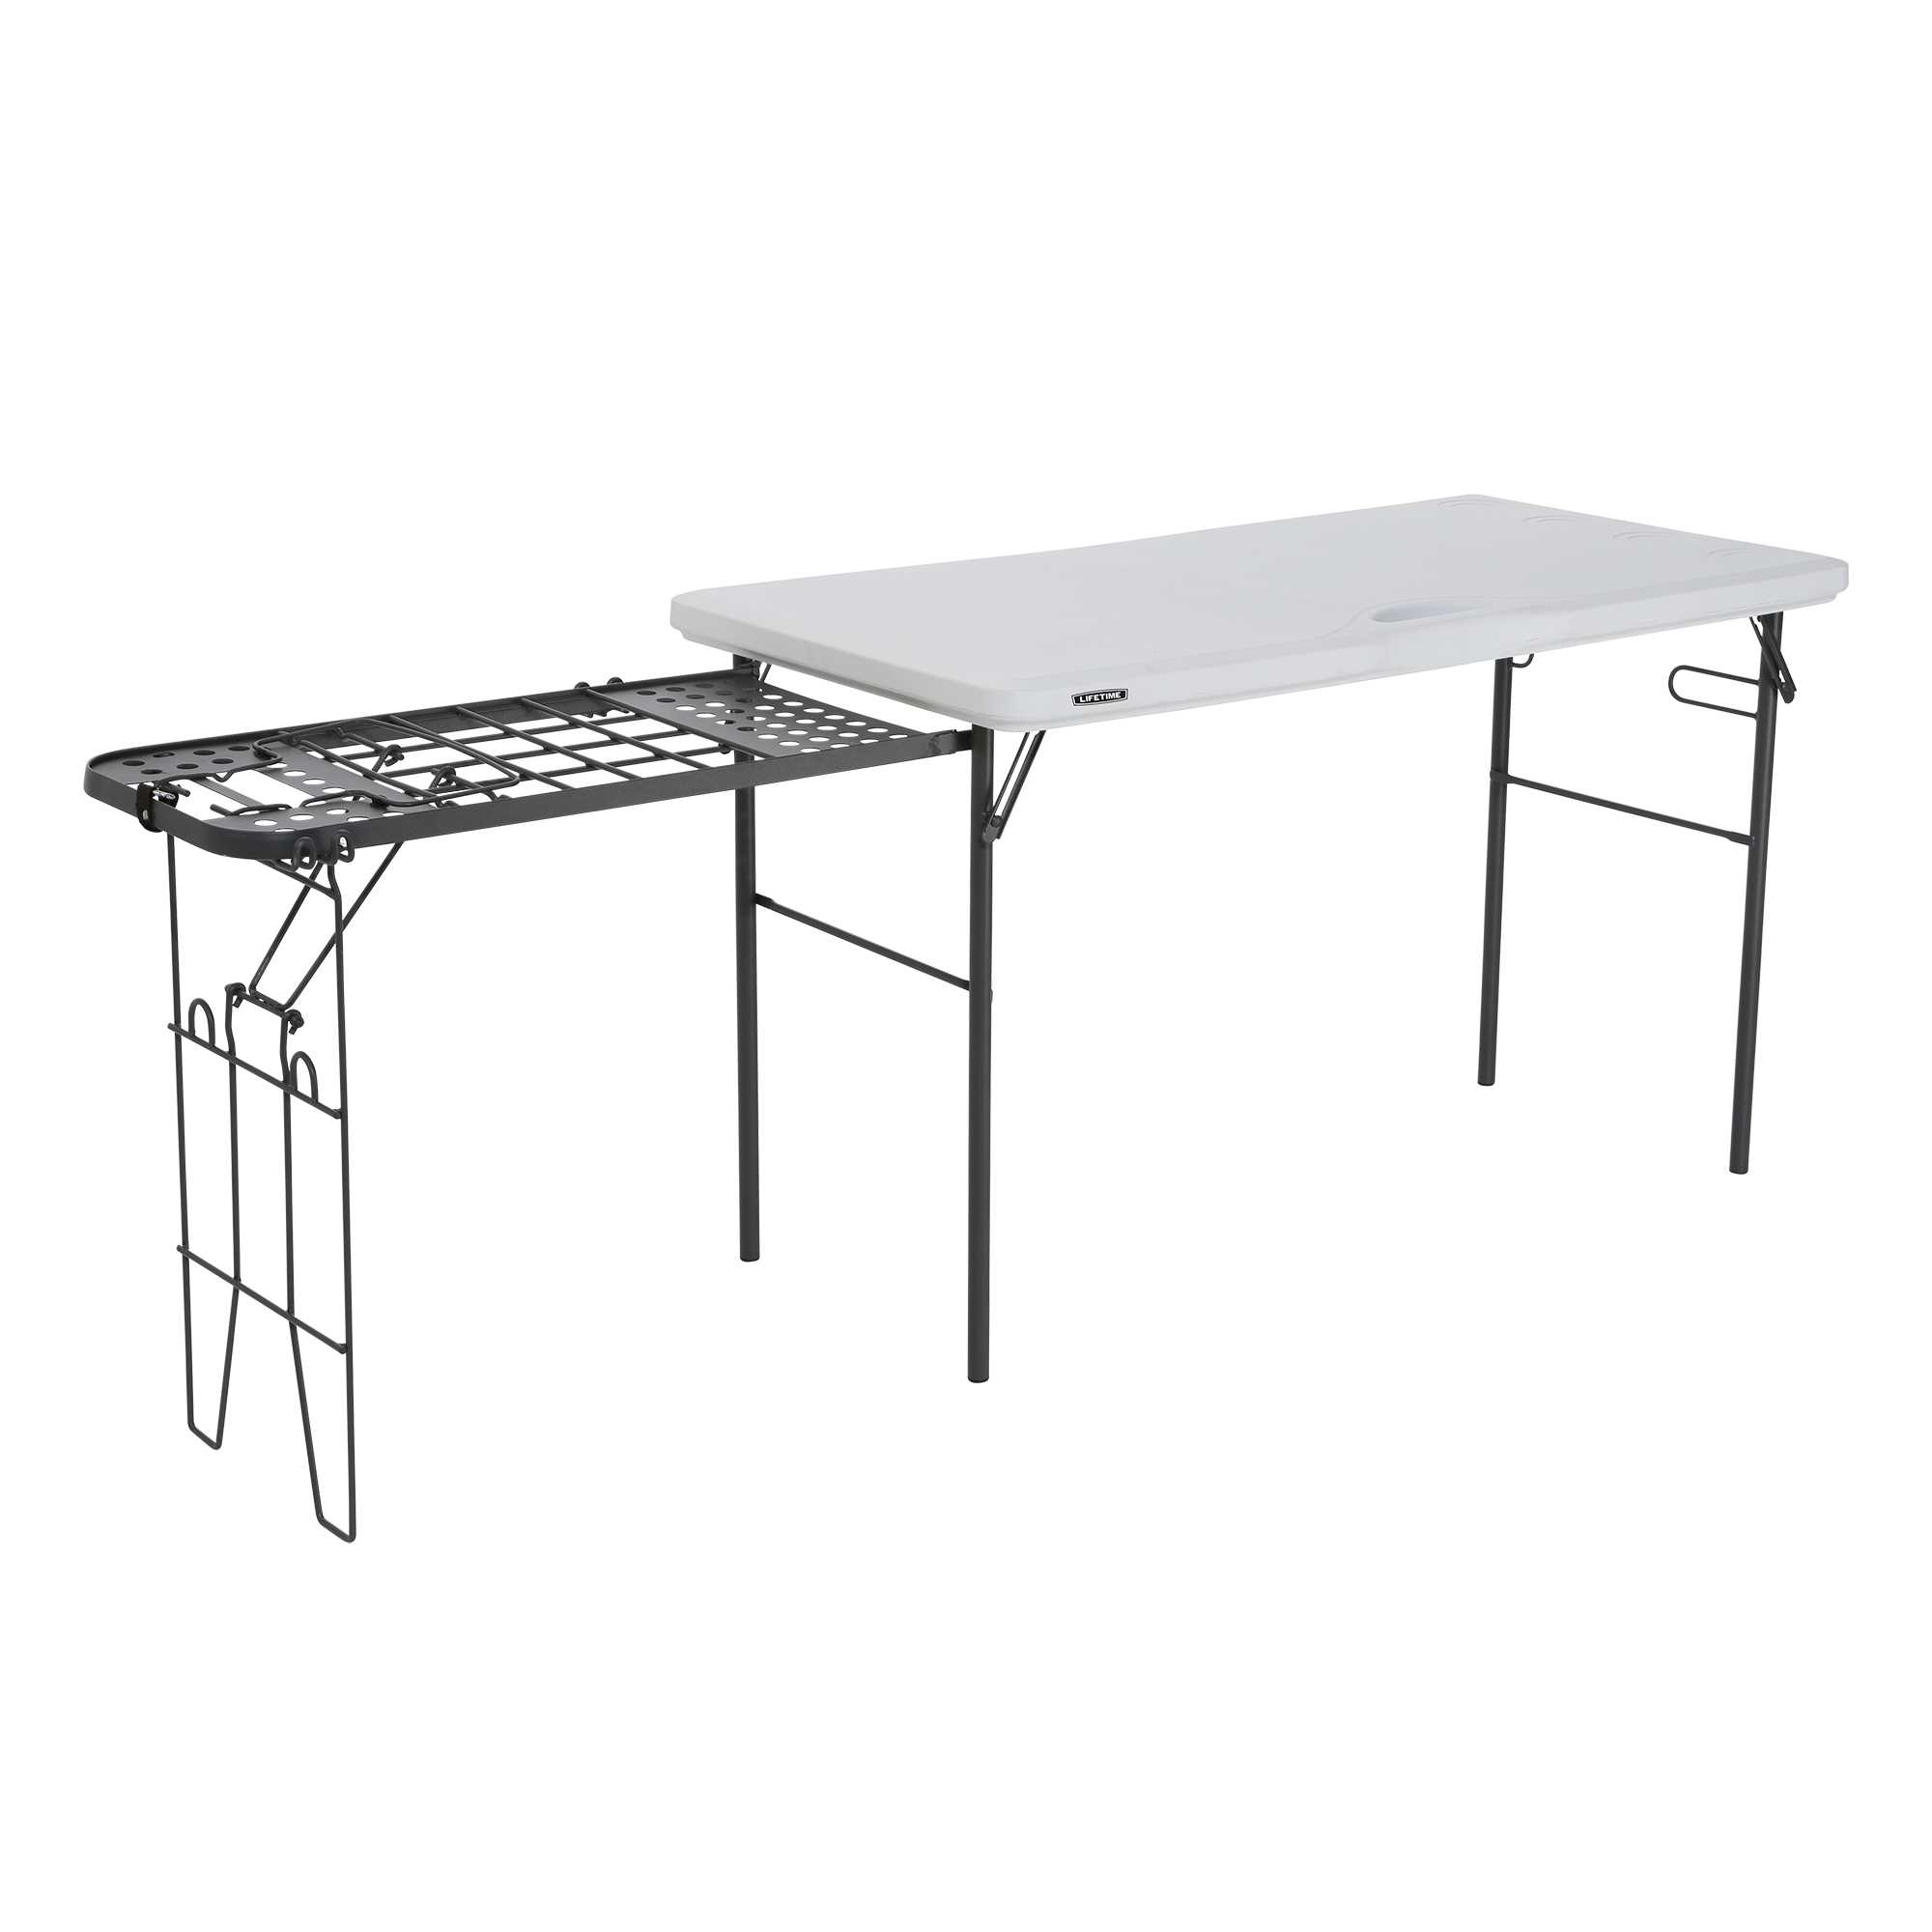 Lifetime 4-Foot Tailgate Table (Light Commercial)